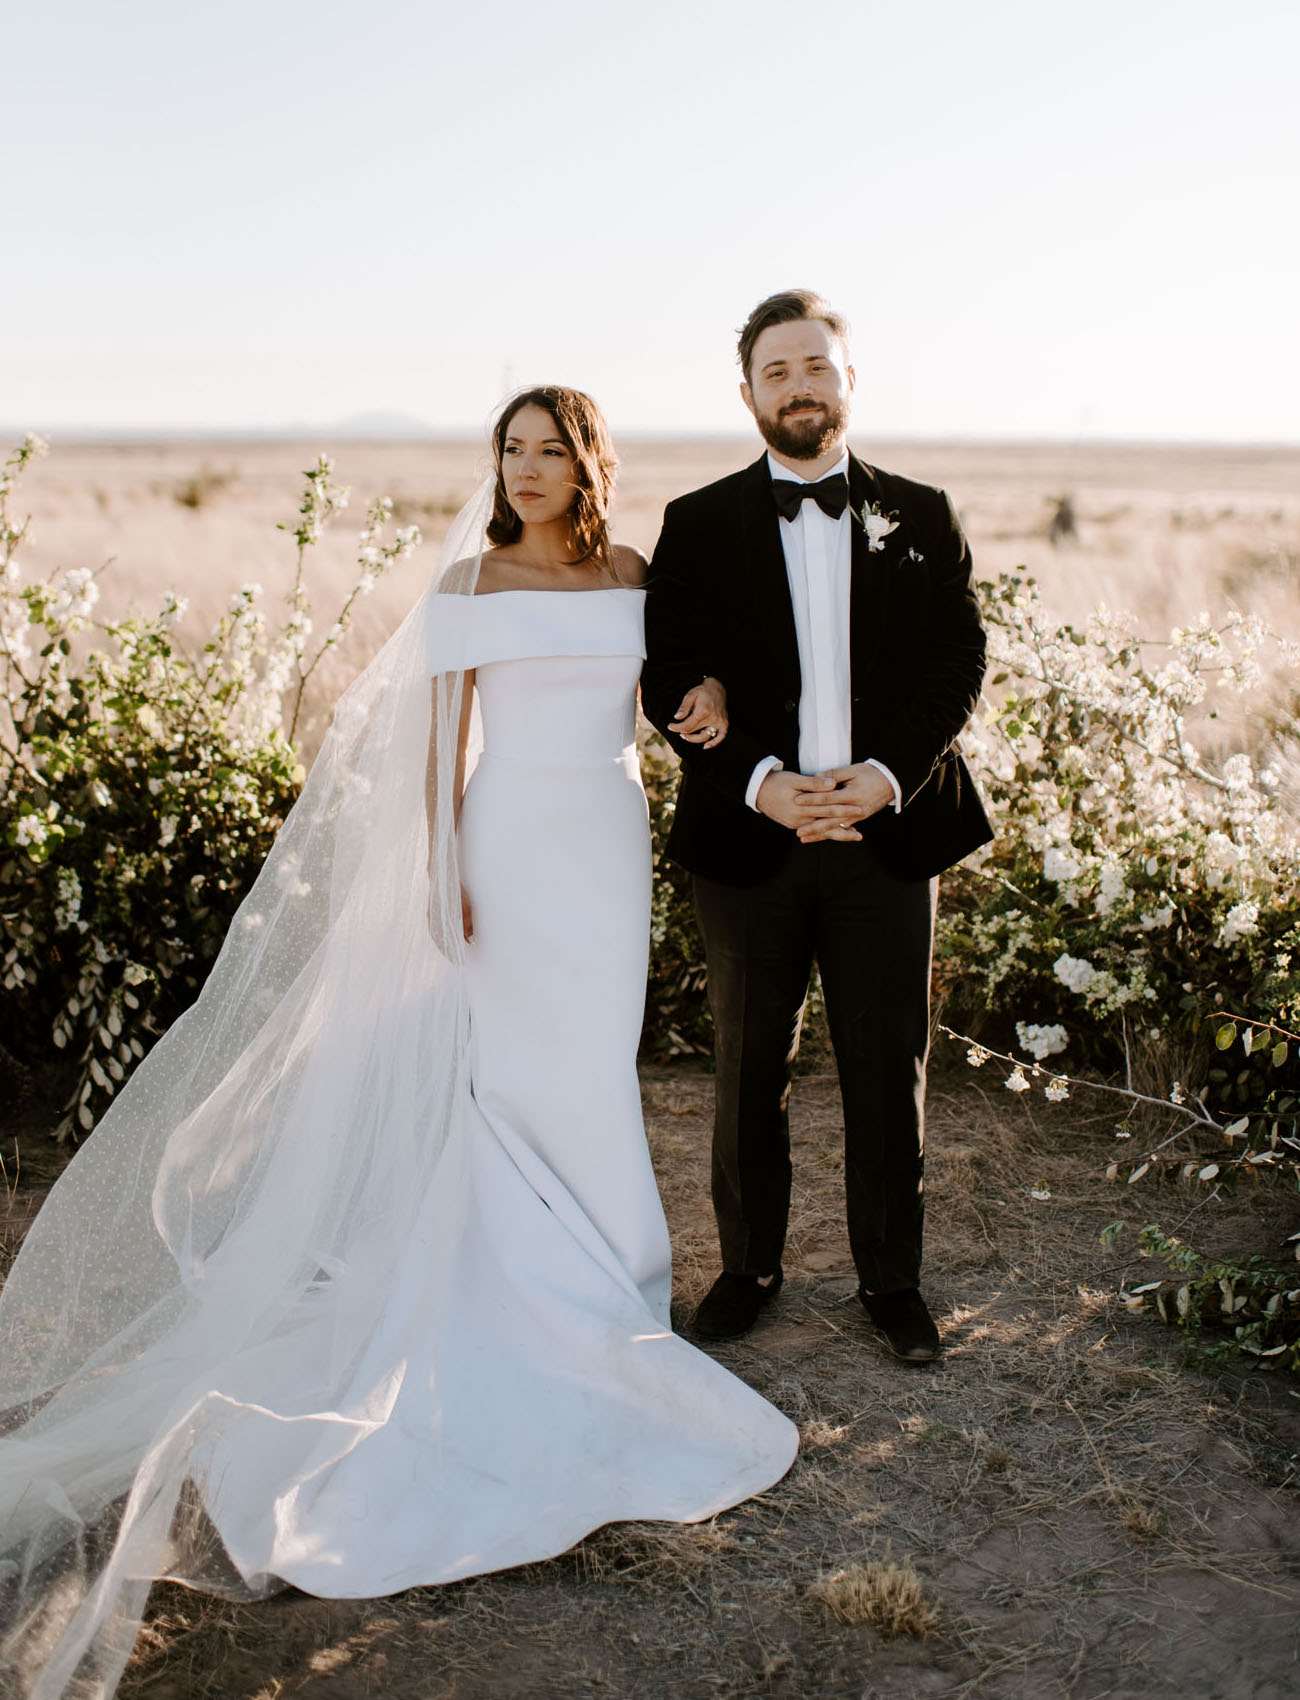 This modern black and white wedding took place in the desert and was done with perfect modern elegance